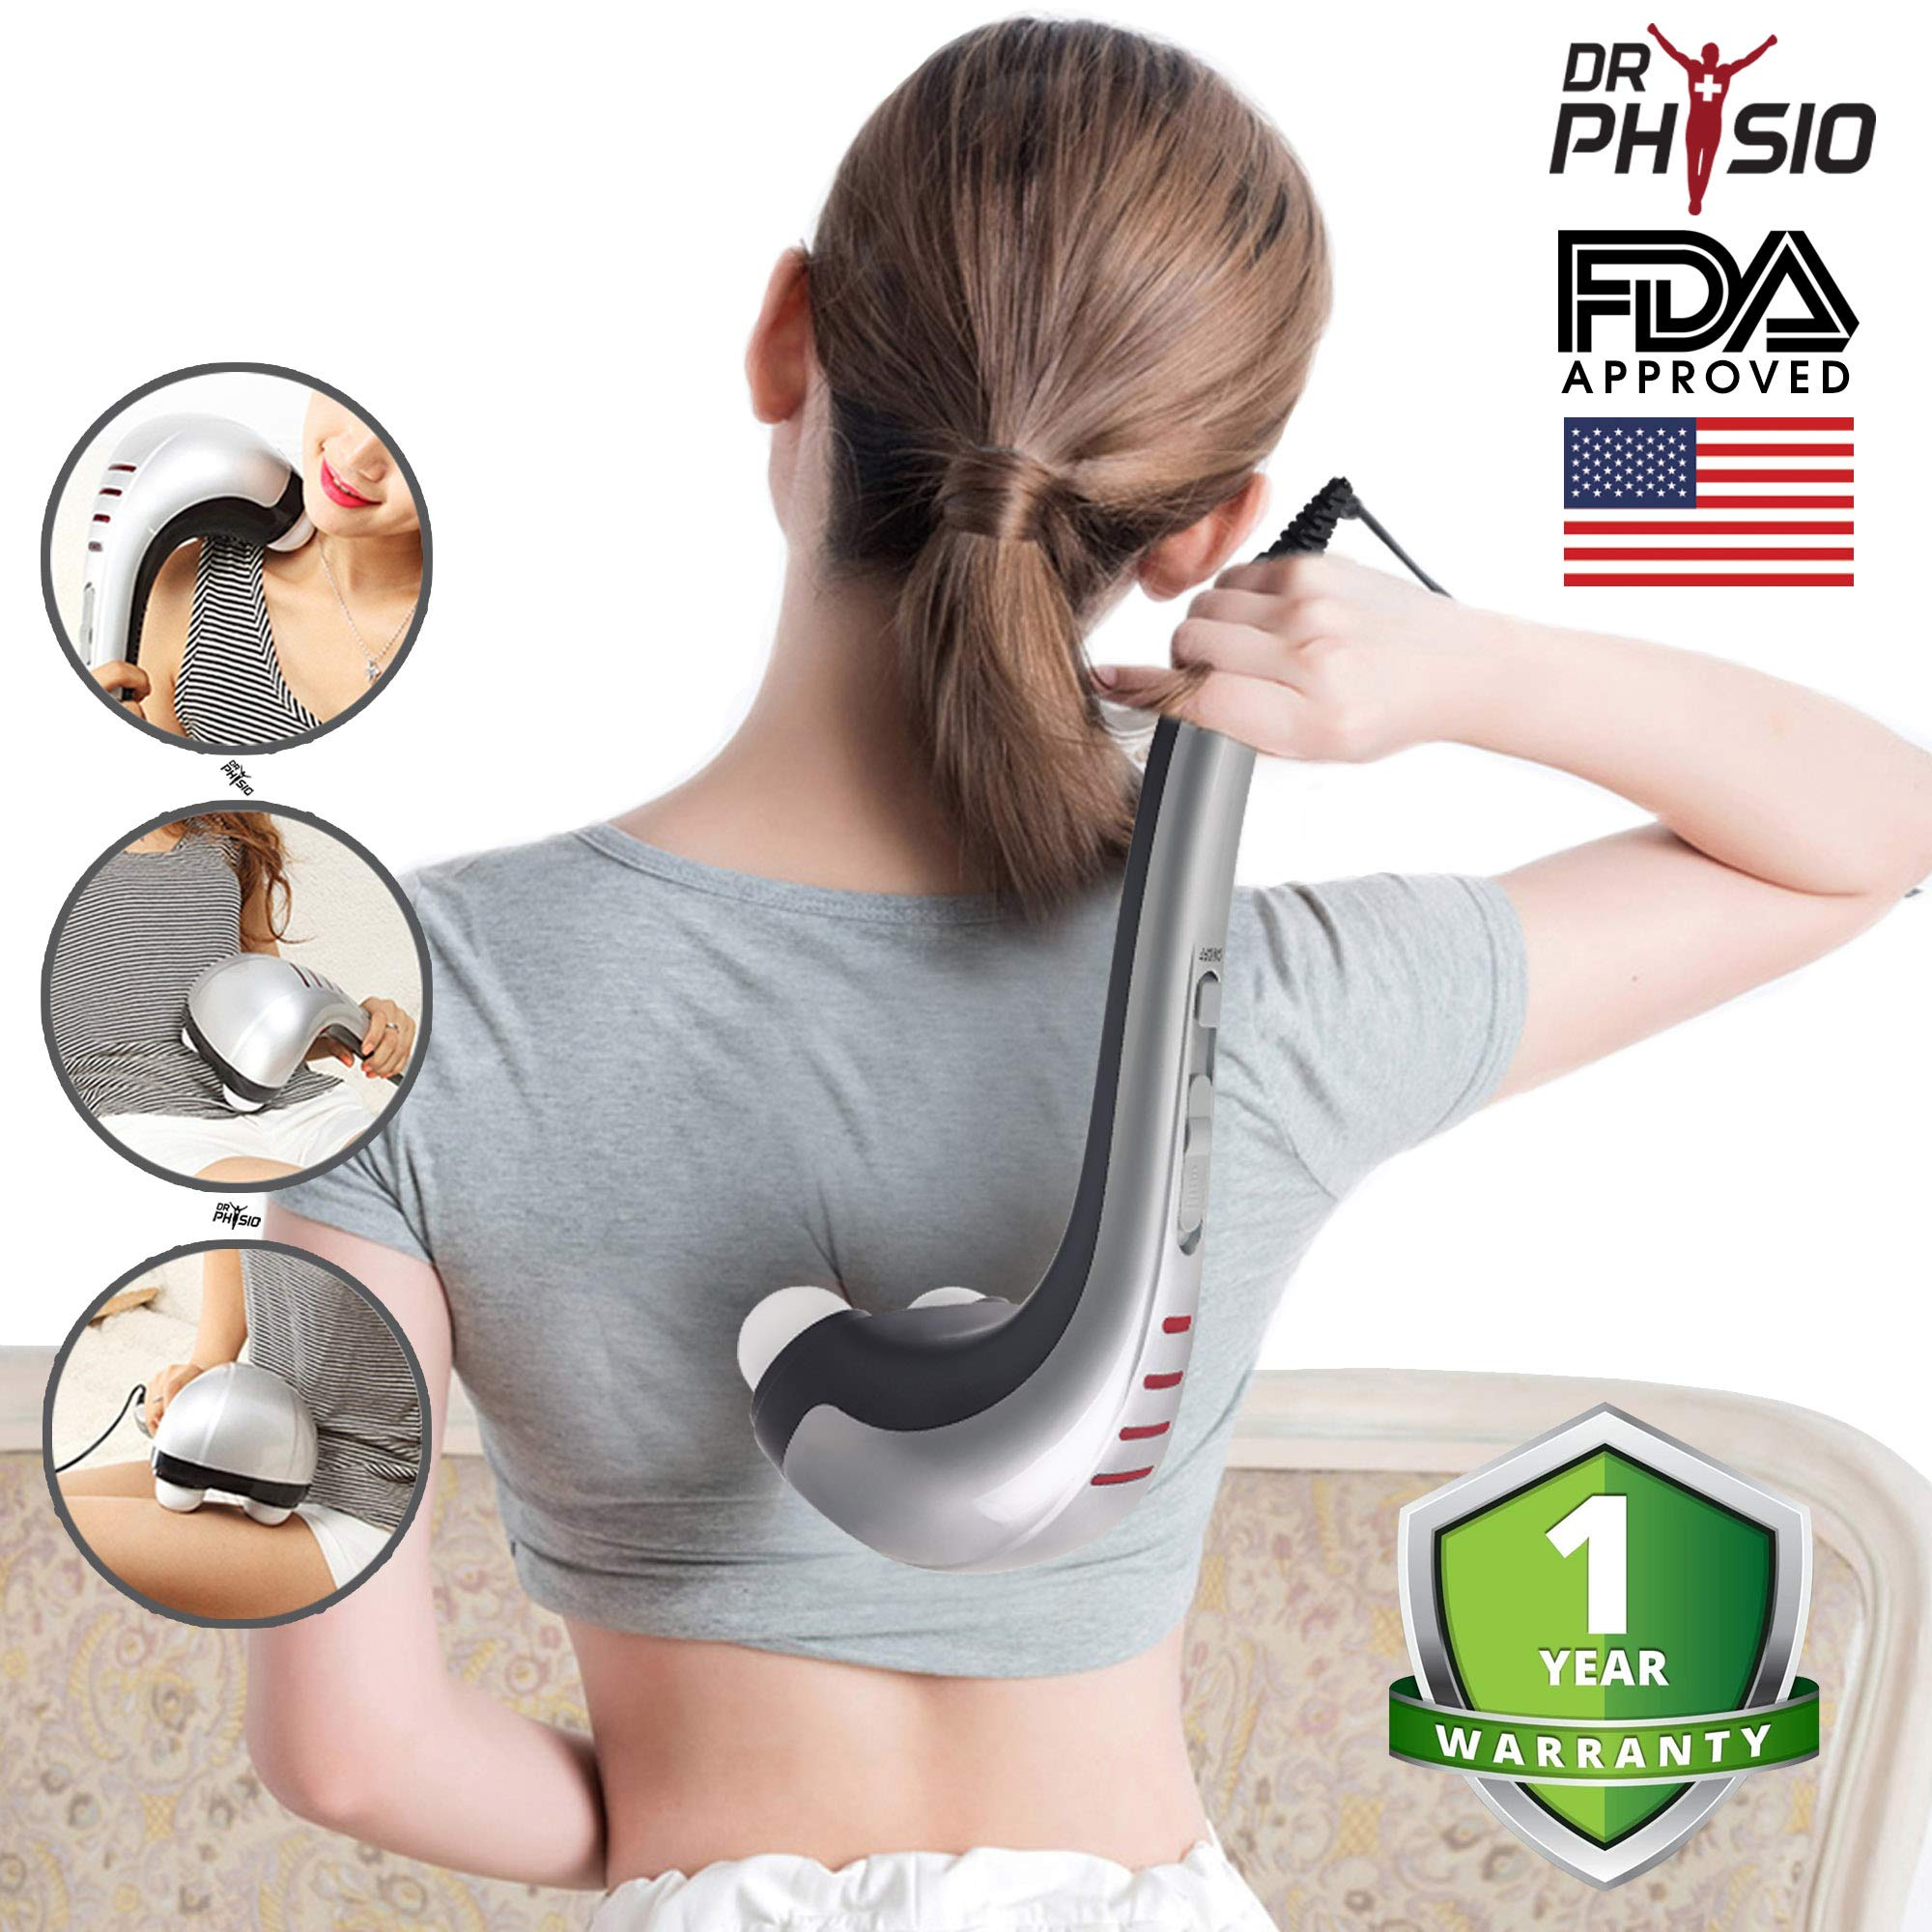 Dr Physio (USA) Electric Hammer Pro Body Massager (Gray) product image